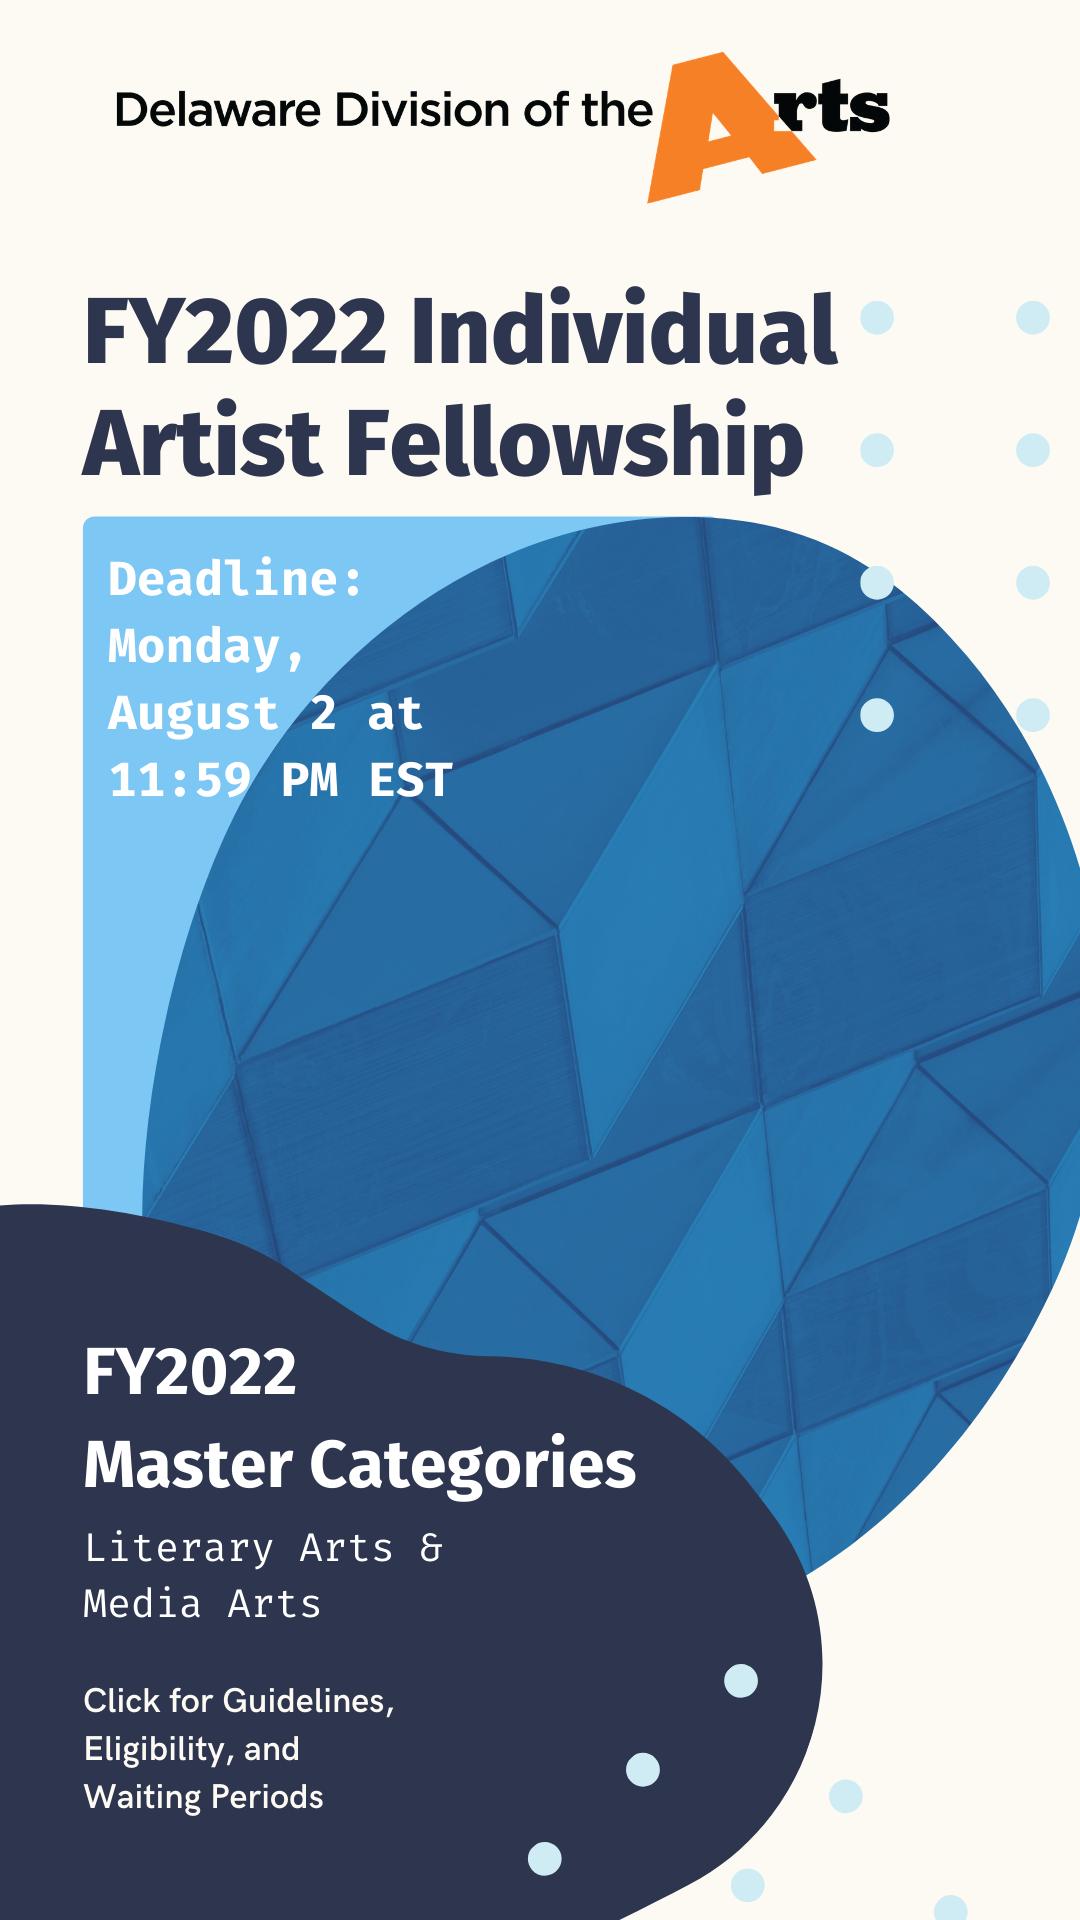 Fiscal Year 2022 Individual Artist Fellowship Deadline Monday August 2 at 11 59 P M E S T F Y 2022 Master Categories Literary Arts and Media Arts Click here for guidelines eligibility and waiting periods